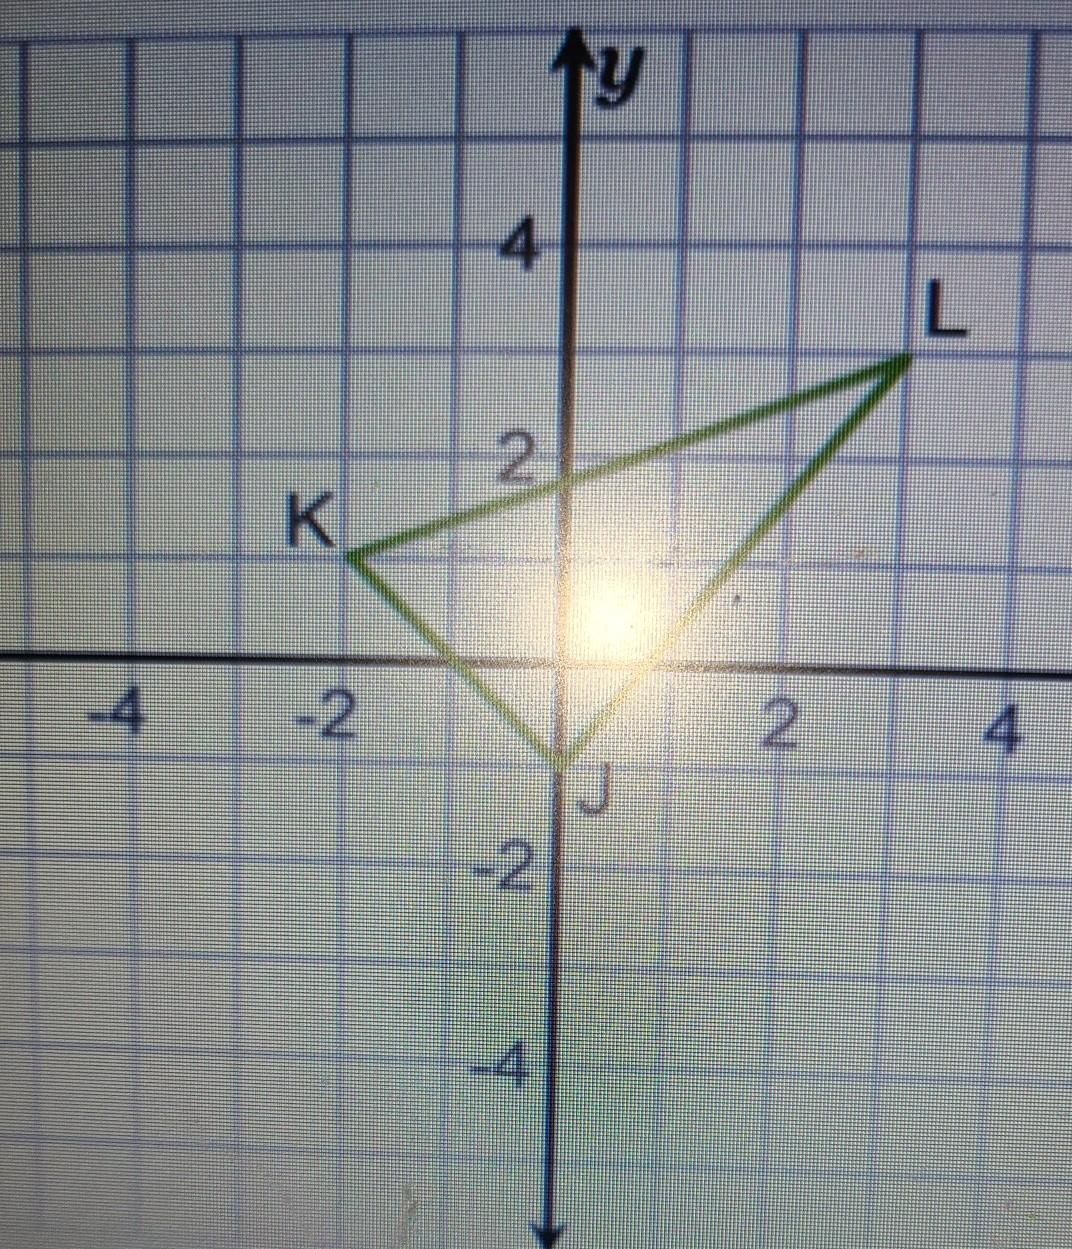 Reflect The Triangle Over The Y Axis And Find The